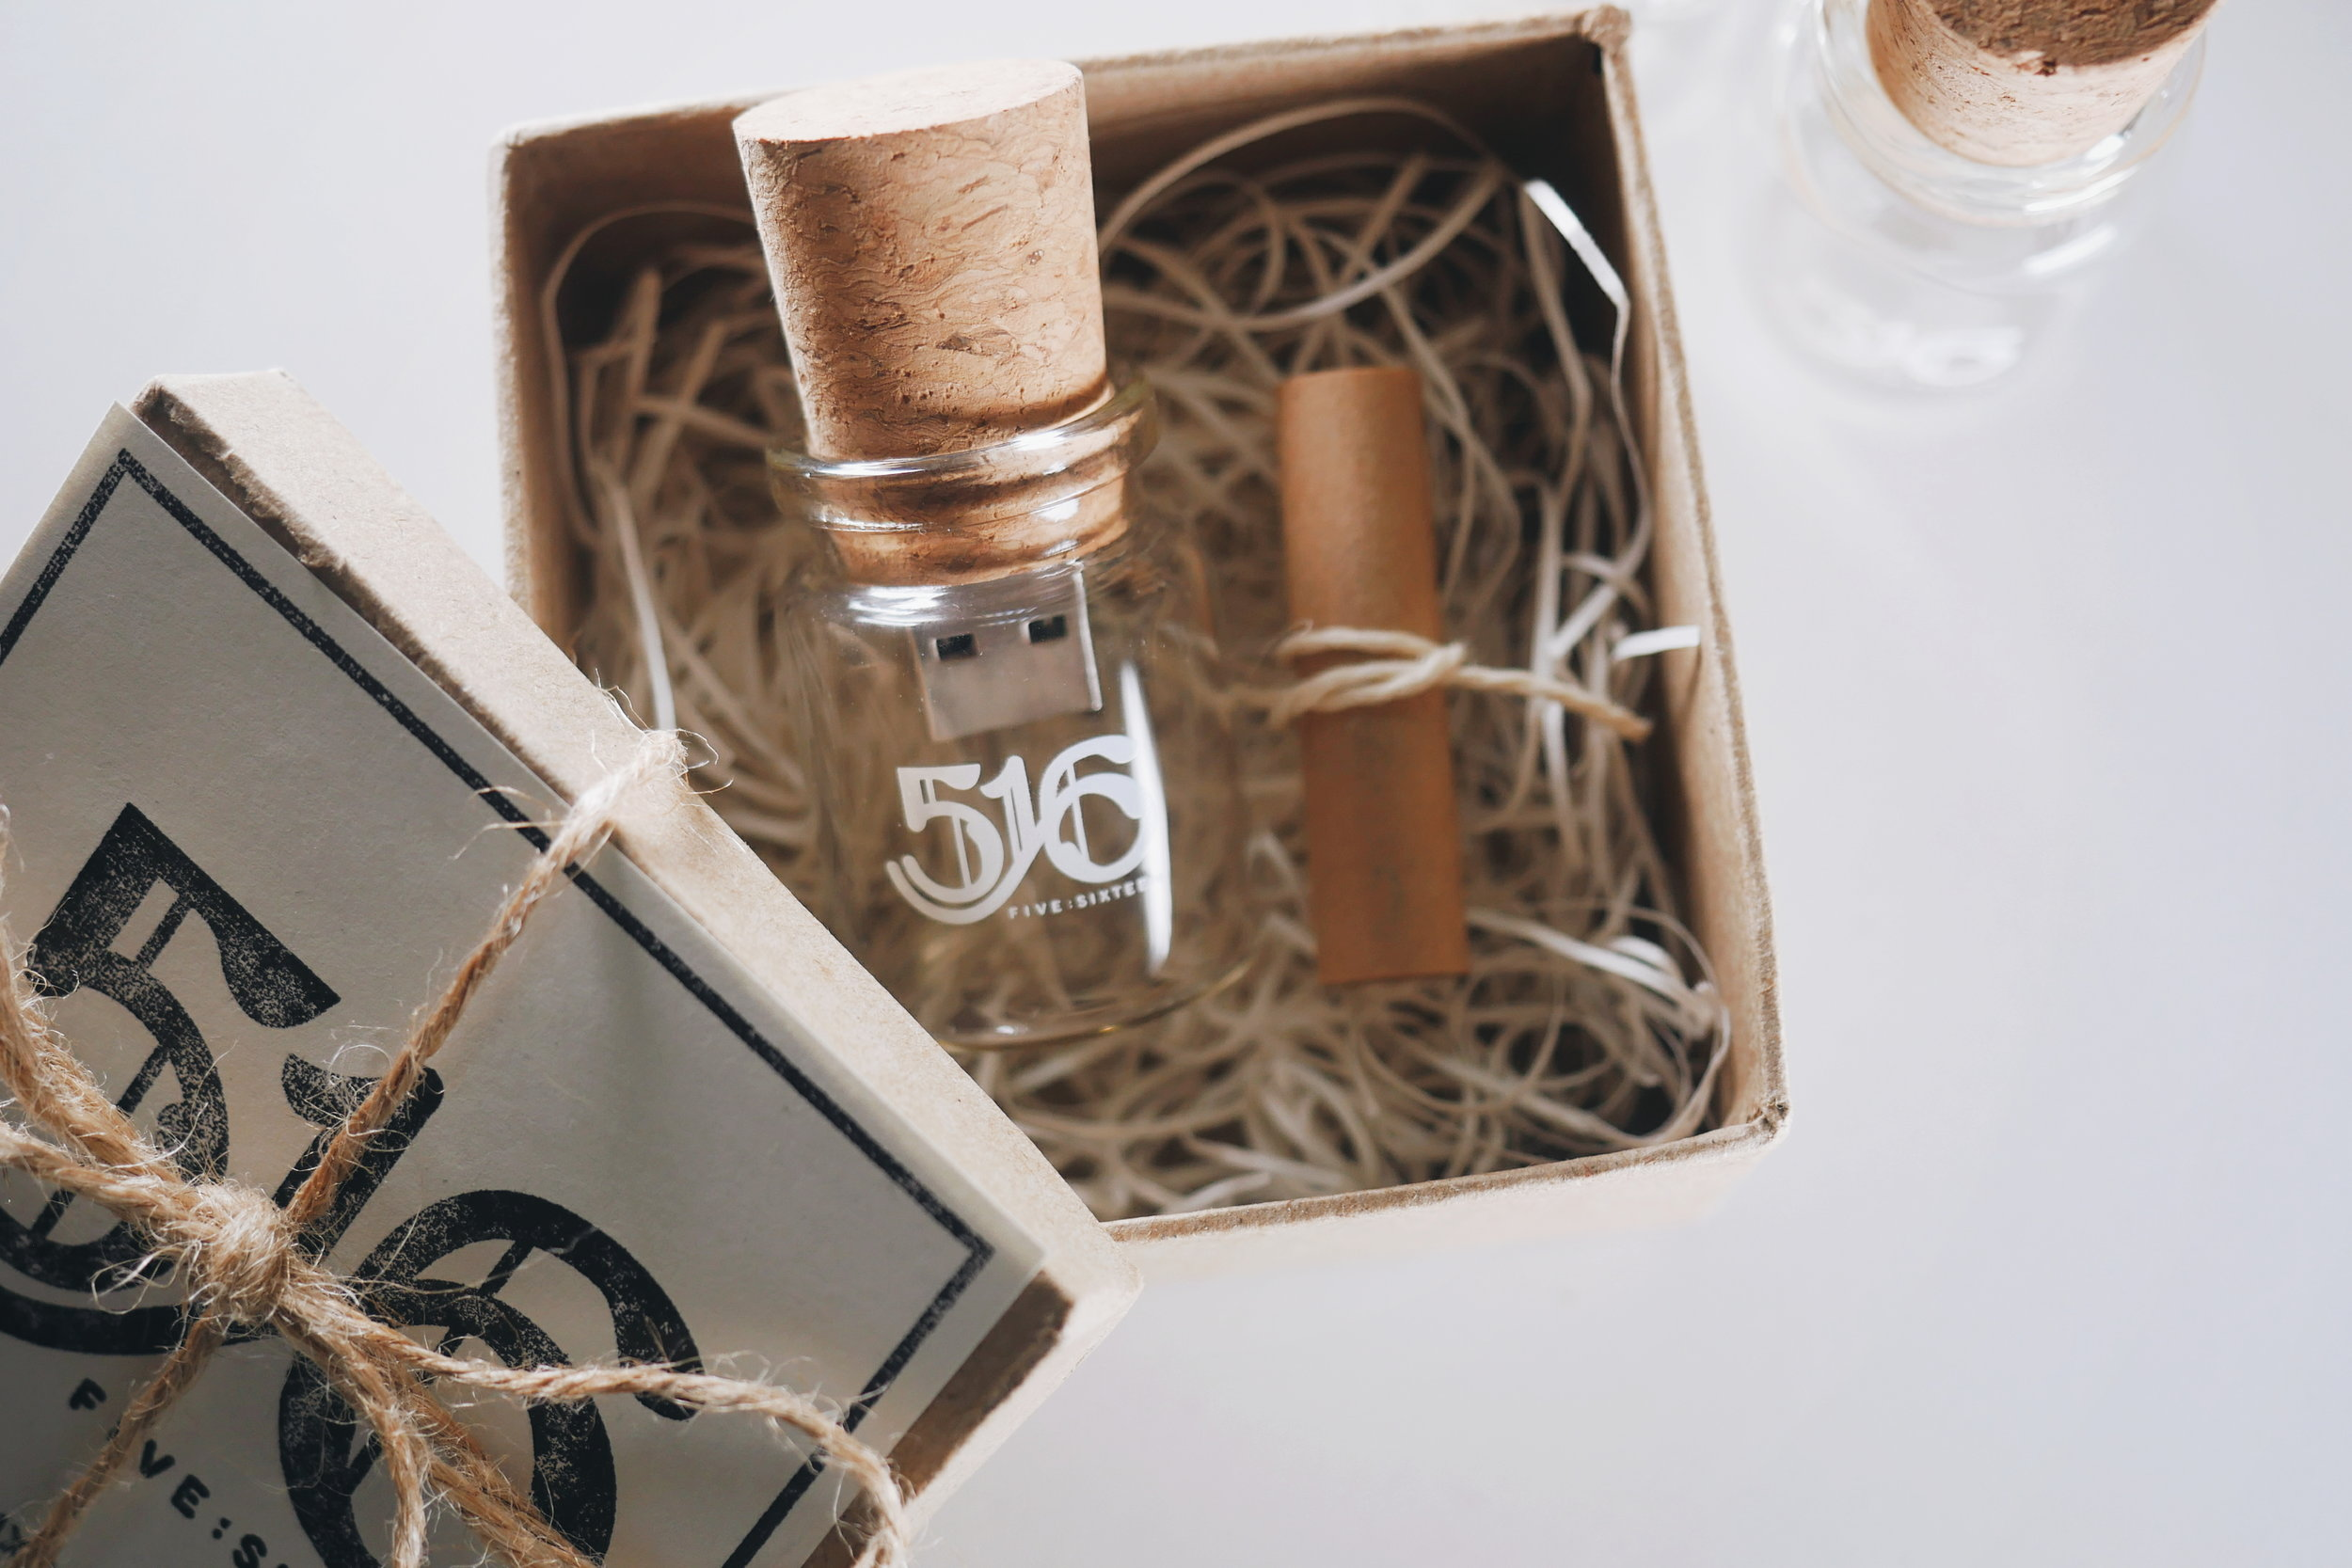 Digital Meets DIY - All Five Sixteen Wedding gift boxes are individually stamped and packaged by hand. Just because your product is digital doesn't mean the experience has to be :)